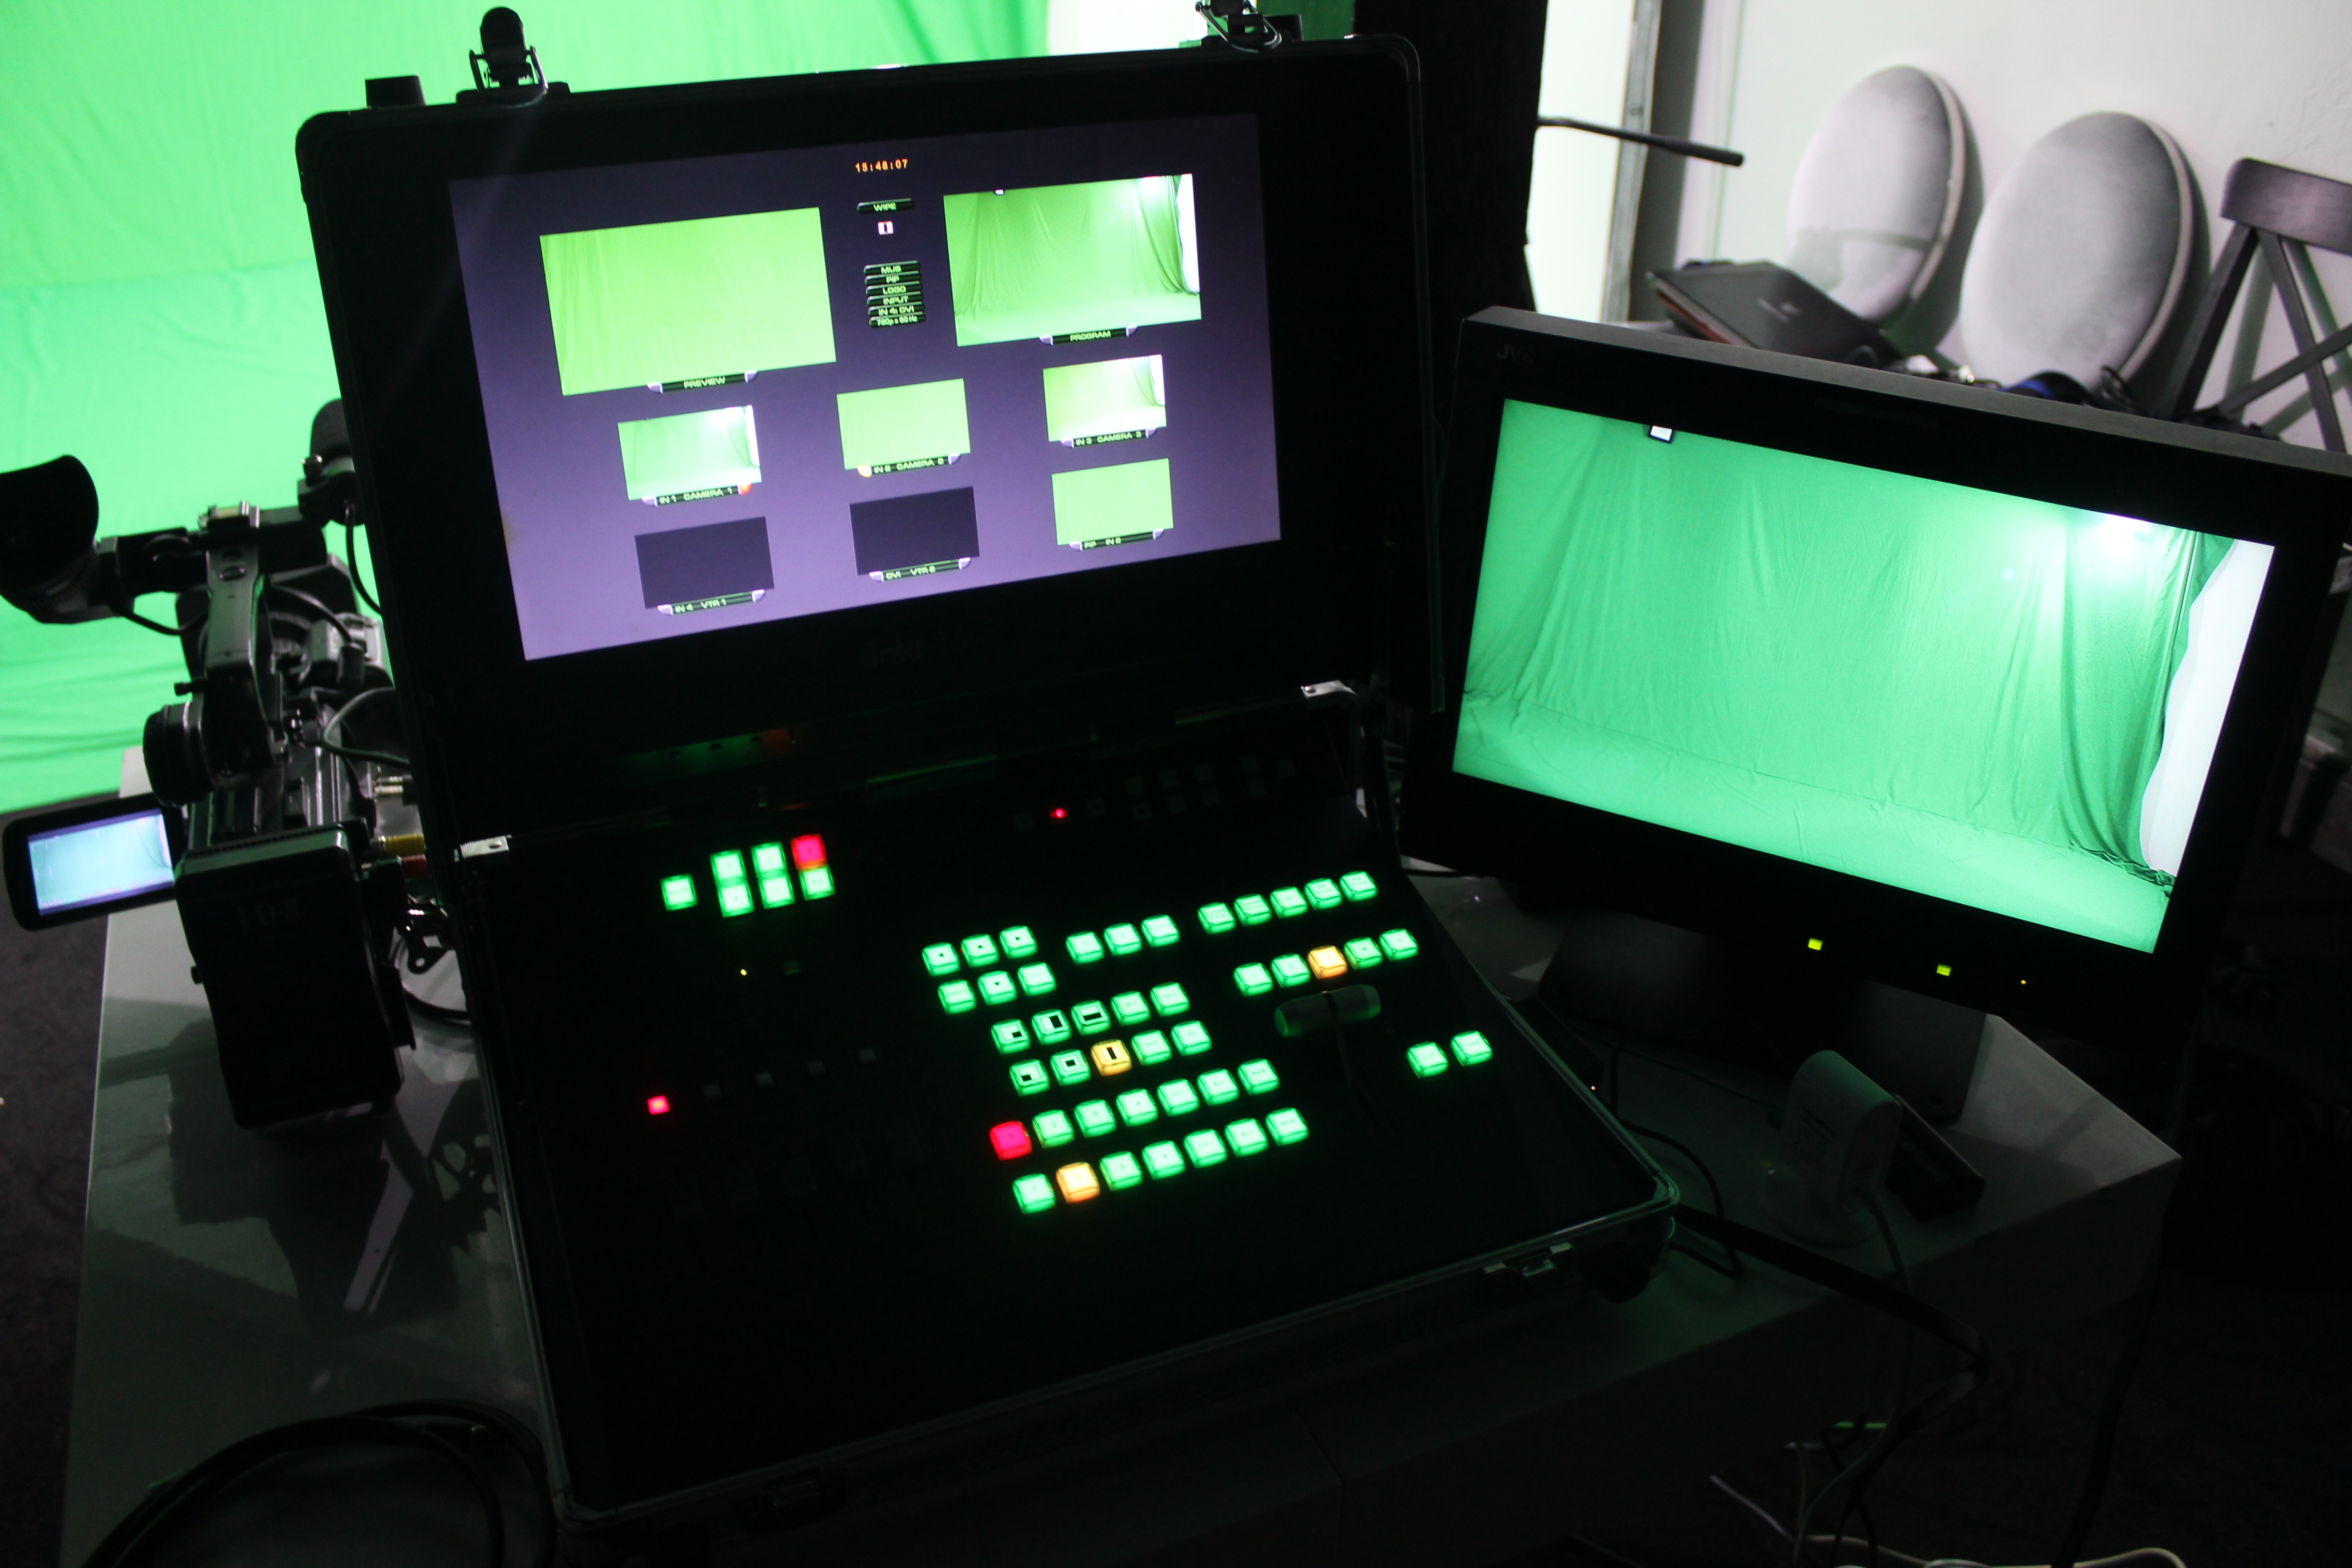 STUDIO MOBILE COMPLETE WITH 3 CAMERAS JVC HD KIT STREAMING OPERATIONNEL DIRECTLY - Image #1